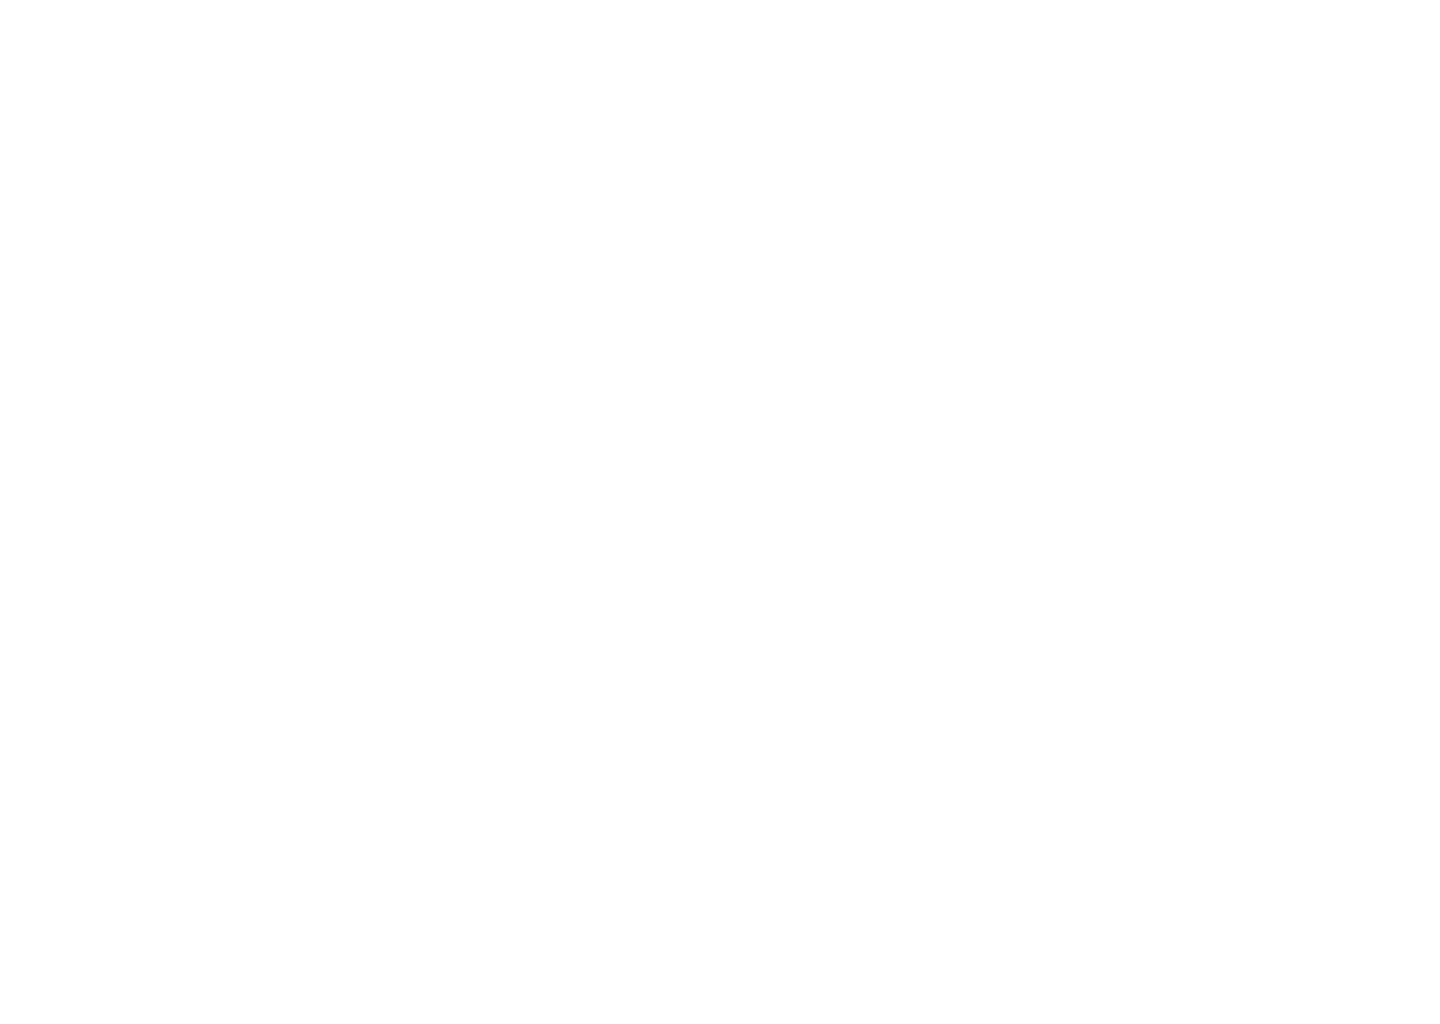 inauguralaccountinggroup.com